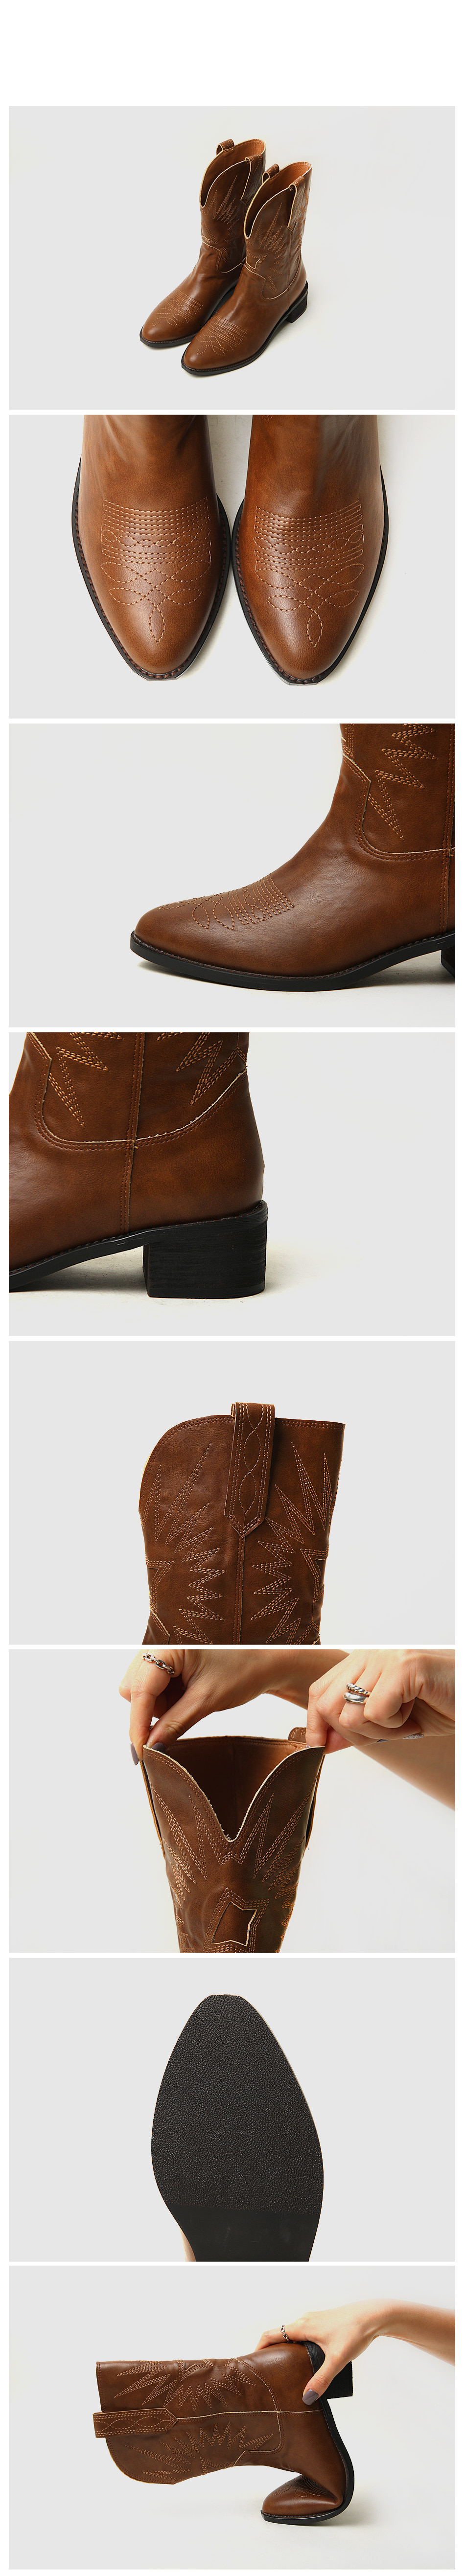 Ovez Western Middle Boots 4cm